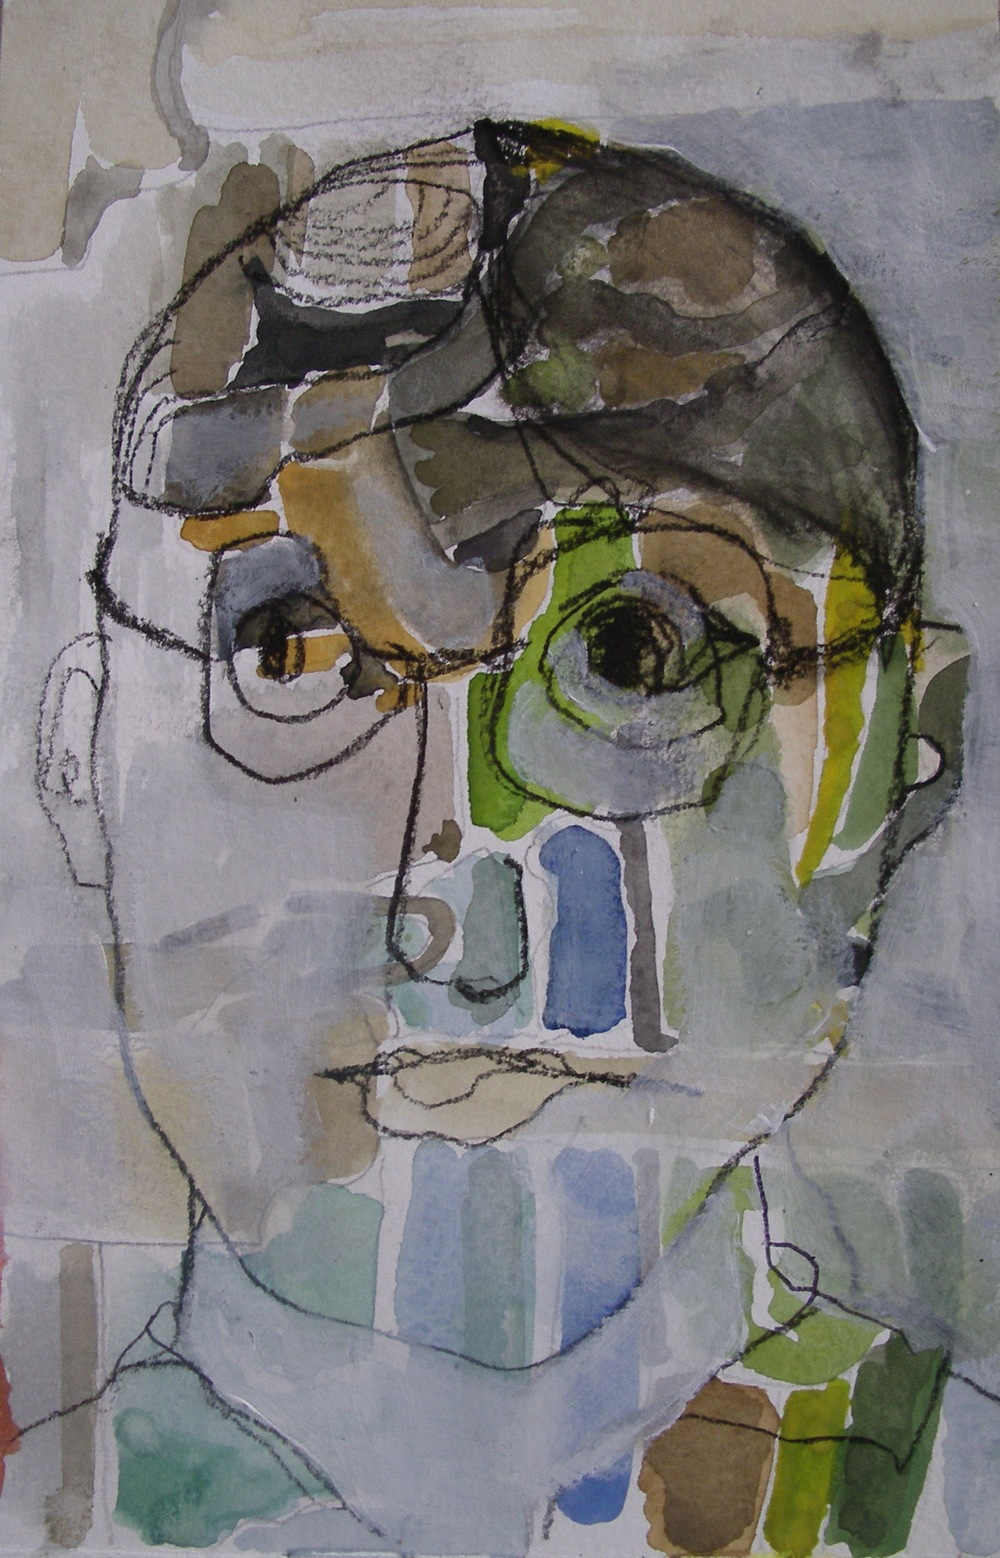 Portrait_Drawing mixed media [13x20cm] 2013 Laura Hudson-3.jpg